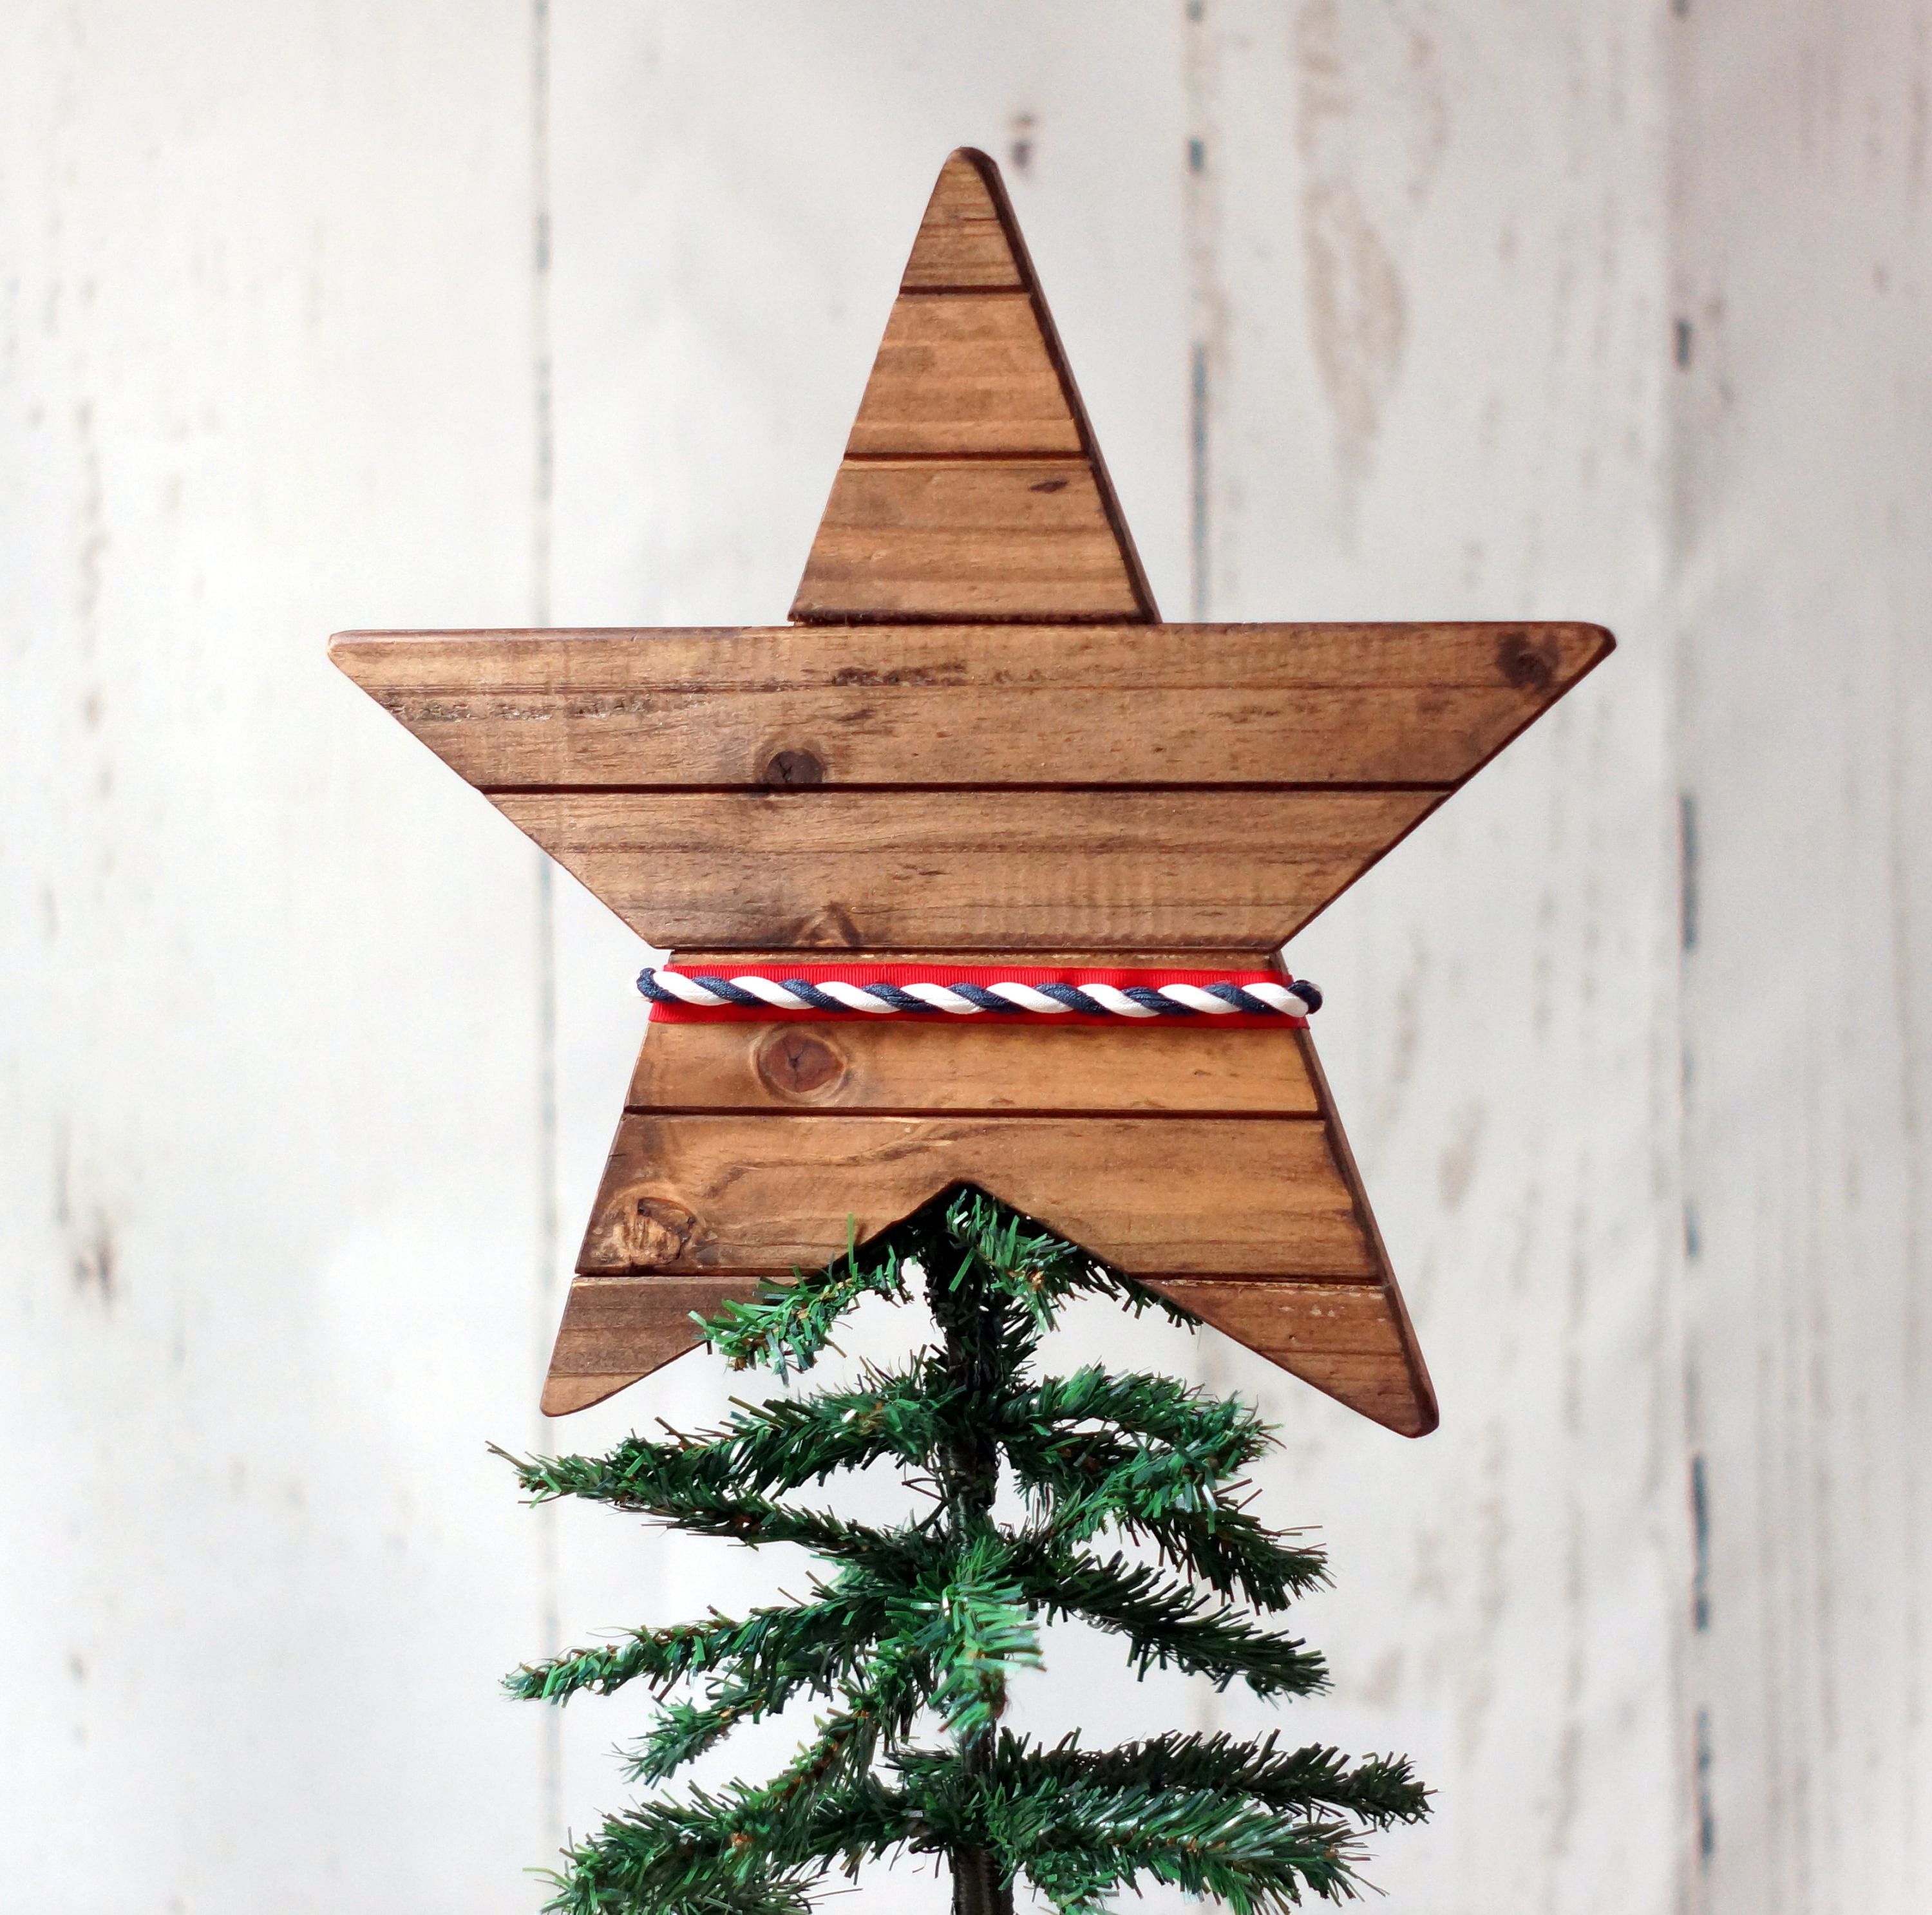 Patriotic Star Tree Topper Rustic Wood Tree Topper Christmas Home Decor Natural Christmas Patriotic Christmas Tree Christmas Tree Decorations Xmas Ornaments